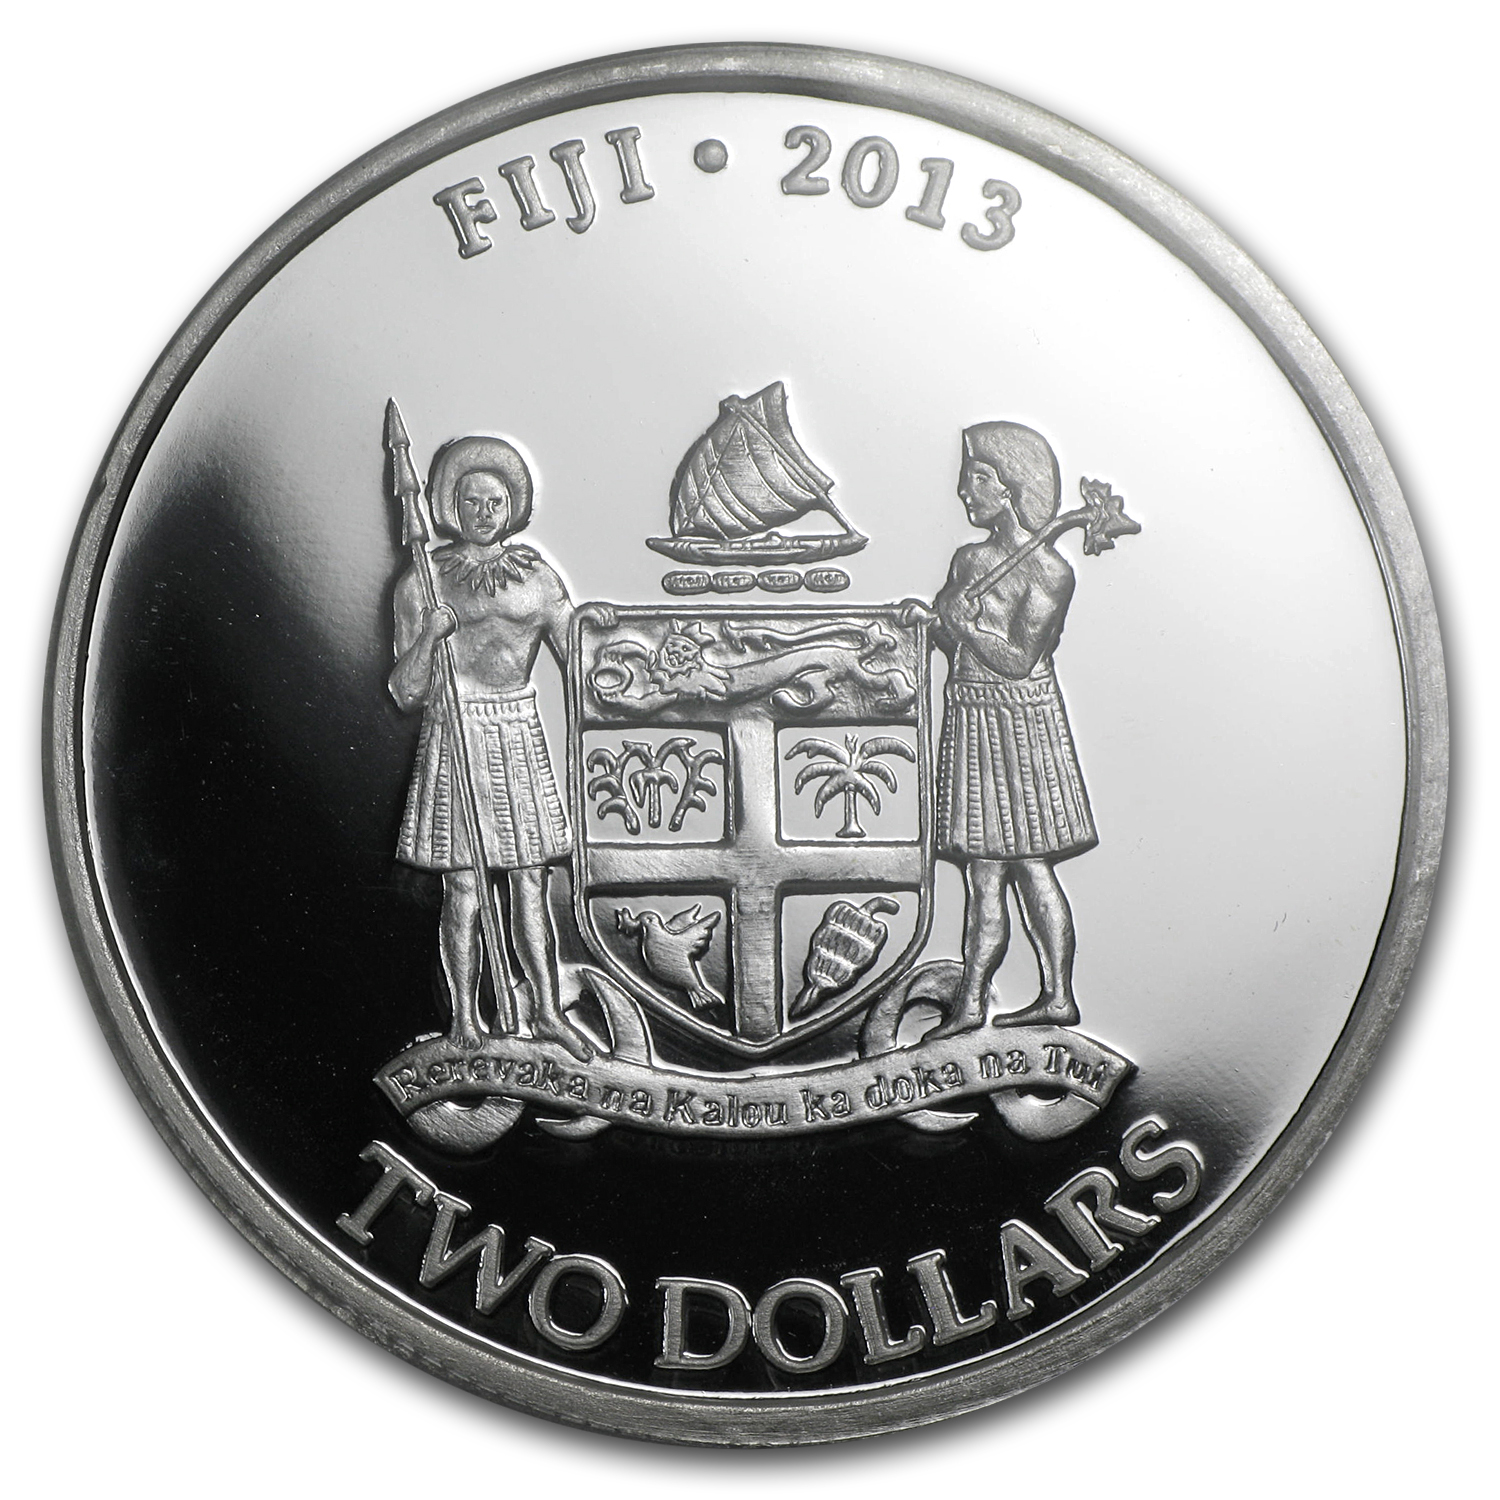 2013 1 oz Silver $2 Fiji Taku Fine MS-70 PCGS First Strike